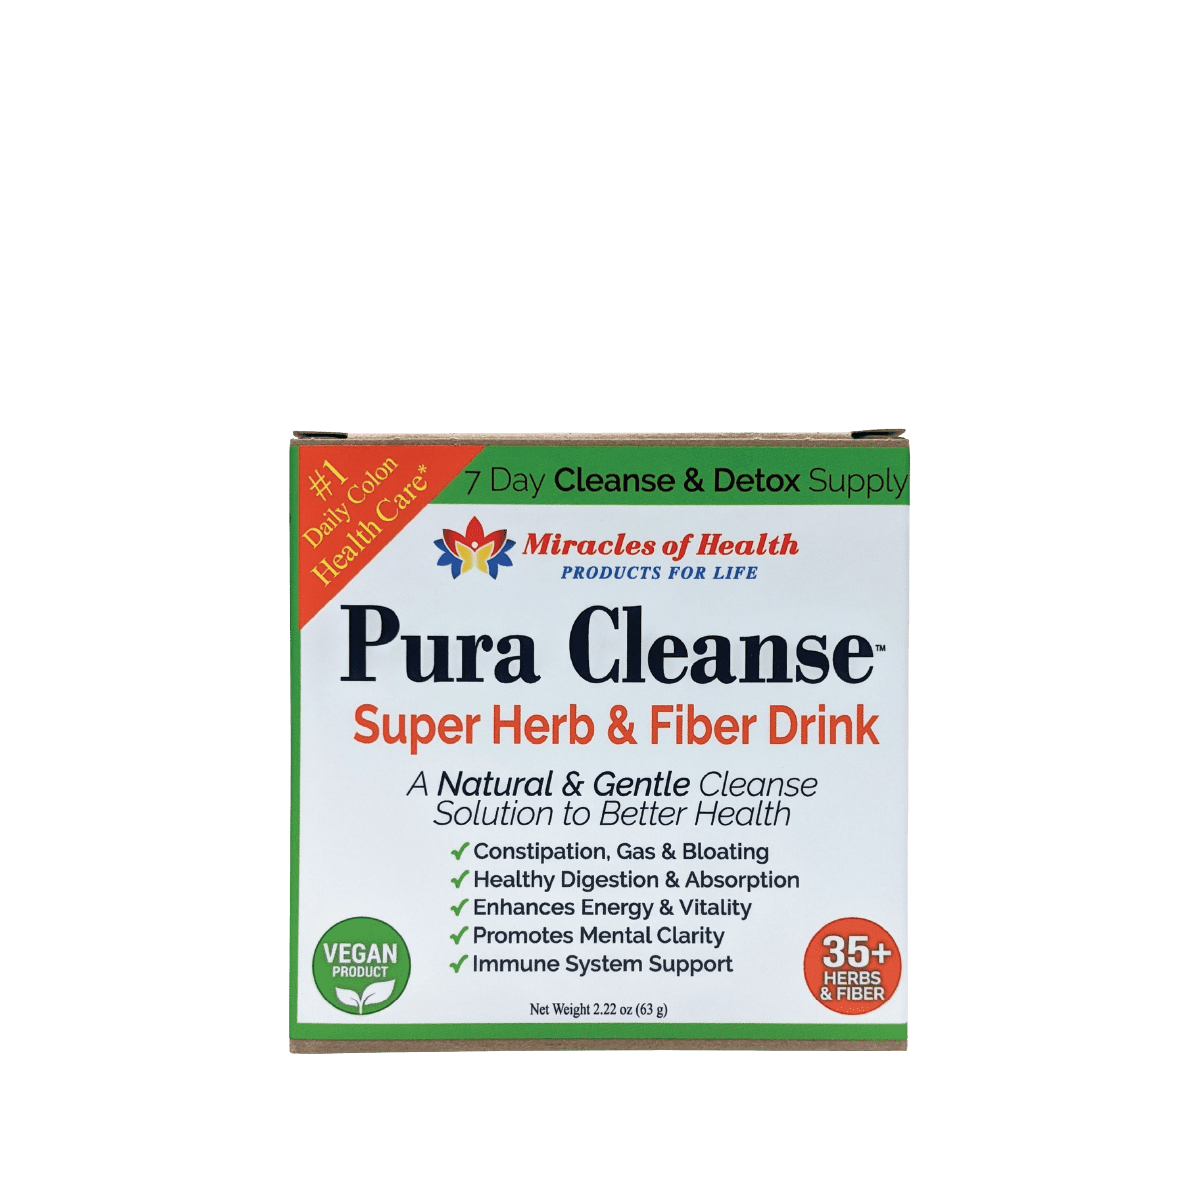 pura cleanse, aloe vera colon cleanse, aloe vera cleanser, colon cleanse tablets, aloe vera colon cleanse tablets, aloe colon cleanse, total body cleanse, whole body cleanse, full body cleanse, colon cleanse products, herbal clean, aloe pura colon cleanse, colon cleanse, colon cleanse pills, gnc cleanse, super cleanse, natural cleanser, renew life cleanse, gut cleanse, super colon cleanse, best colon cleanse, digestive cleanse, aloe pura tablets, one day cleanse, body cleanse, aloe pura, natural colon cleanse, ion cleanse, liquid cleanse, cleanse more, aloe vera colon cleanse juice, colon cleanse reviews, gnc colon cleanse, advocare cleanse, para cleanse, green tea cleanser, pure cleanse, isagenix cleanse, aloe cleanser, colon cleanse powder, aloe vera colon, ultimate cleanse, colon cleanse holland and barrett, oxy cleanser, first cleanse, daily cleanse, colon cleanse at home, total cleanse, super colon cleanse review, parasite cleanse reviews, herbal colon cleanse, colon cleanse advanced tablets, smart cleanse, aloe tablets, quick cleanse, aloe vera juice cleanse, colon tablets, advocare herbal cleanse, aloe colon cleanse tablets, green cleanse, aloe pura colon cleanse tablets reviews, oxygen colon cleanse, gnc body cleanse, seven day cleanse, cleansing tablets, stomach cleanse, colon cleanse juice, cleanse smart, vital cleanse, go cleanse, vitamin b50, organic colon cleanse, pure colon cleanse, renew life total body cleanse, lemonade cleanse, tiao he cleanse, renew cleanse, healthy colon cleanse, sculpt and cleanse, ckls cleanse, quick colon cleanse, oxy powder cleanse, safe colon cleanse, gentle colon cleanse, colon cleanse uk, natural bowel cleanse, liquid colon cleanse, sculpt n cleanse, pureformulas, nutra cleanse, thisilyn cleanse, mega clean, pura cleanse reviews, complete liver cleanse, oxygen cleanse, ultra cleanse, liver cleanse reviews, cleanse and lean, easy colon cleanse, solaray total cleanse, colon cleanse supplement, lemon cleanse diet, meno balance, gentle action aloe vera colon cleanse tablets, complete colon cleanse, top colon cleanse, organ cleanse, yerba prima cleanse, fruit cleanse, renew colon cleanse, parasite colon cleanse, liver kidney cleanse, gamma g fuel, daily colon cleanse, quick body cleanse, isogenix cleanse, total colon cleanse, colon cleanse ingredients, colon ultra cleanse, polyvitamin, bowel cleanse tablets, organic body cleanse, the ultimate cleanse, pro cleanse, master cleanse reviews, body cleanse reviews, colon cleanse amazon, liver colon cleanse, veggie cleanse, aloe pura laboratories tablets, inner cleanse, probiotic colon cleanse, cheap colon cleanse, advanced colon cleanser, spleen cleanse, psyllium colon cleanse, advanced cleanser, vita cleanse, buy colon cleanse, extreme colon cleanse, gi tract cleanse, colon cleanse formula, turmeric capsules, liquid vit c, nutri cleanse, aloe tablets for constipation, psyllium husk cleanse, pure cleanse system, colon cleanse system, raspberry ketones and aloe vera colon cleanse ,aloe juice cleanse, solgar rutin, organic bowel cleanse, nose cleaner, ping wei san, ez cleanse, aloe vera colon cleanse reviews, bowel cleanse reviews, blessed herbs cleanse, cayenne cleanse, magic cleanse, pure body cleanse, zen vitamins, pure cleanse reviews, temple cleanse, pure cleanse pills, parasite cleanse results, super gi cleanse, cleanse pure pro, colon cleanse forum, herbal bowel cleanse, super body cleanse, advocare colon cleanse, senna cleanse, free colon cleanse, revolutionary colon cleanse, colon cleanse capsules, natura colon cleanse, aloe vera tablets, cleanser uk, holistic cleanse, lung cleansing herbs, body colon cleanse, powder cleanser, costco colon cleanse, bentonite colon cleanse, health colon cleanse, colon cleanse ireland, genesis cleanse, pineapple cleanse, cleansing herbs, body cleanse tablets, senna colon cleanse, great cleansing, overnight colon cleanse, pure cleanse colon cleanse, colon cleanse for ibs, be pure cleanse, mango cleanse, colon cleanse pro, socal cleanse, unicity colon cleanse, pineapple colon cleanse, how does a colon cleanse work, gnc complete body cleansing program 2 day, colon cleanse buy, lemon colon cleanse, salt water cleanse, cleanse canada, hepi cleanse, mag oxide 400 mg, why colon cleanse, colon cleansers that work, salt colon cleanse, mercola whey, colon cleanse effects, revive colon cleanse, pure cleanse ingredients, advanced pure cleanse, puradyme cleanse, colon cleanse for pregnancy, liver cleanse testimonials, colon cleanse 3000, mason colon cleanser, live pure cleanse, colon cleanse edinburgh, colon cleanse diarrhea, liver cleanse hoax, colon cleanse symptoms, liver cleanse scam, aloe pura review, colon cleanse store, benefits of bowel cleansing, colon cleanse dangers, socal cleaning, colon cleanse info, pure life colon cleanse, pura vida cleanse